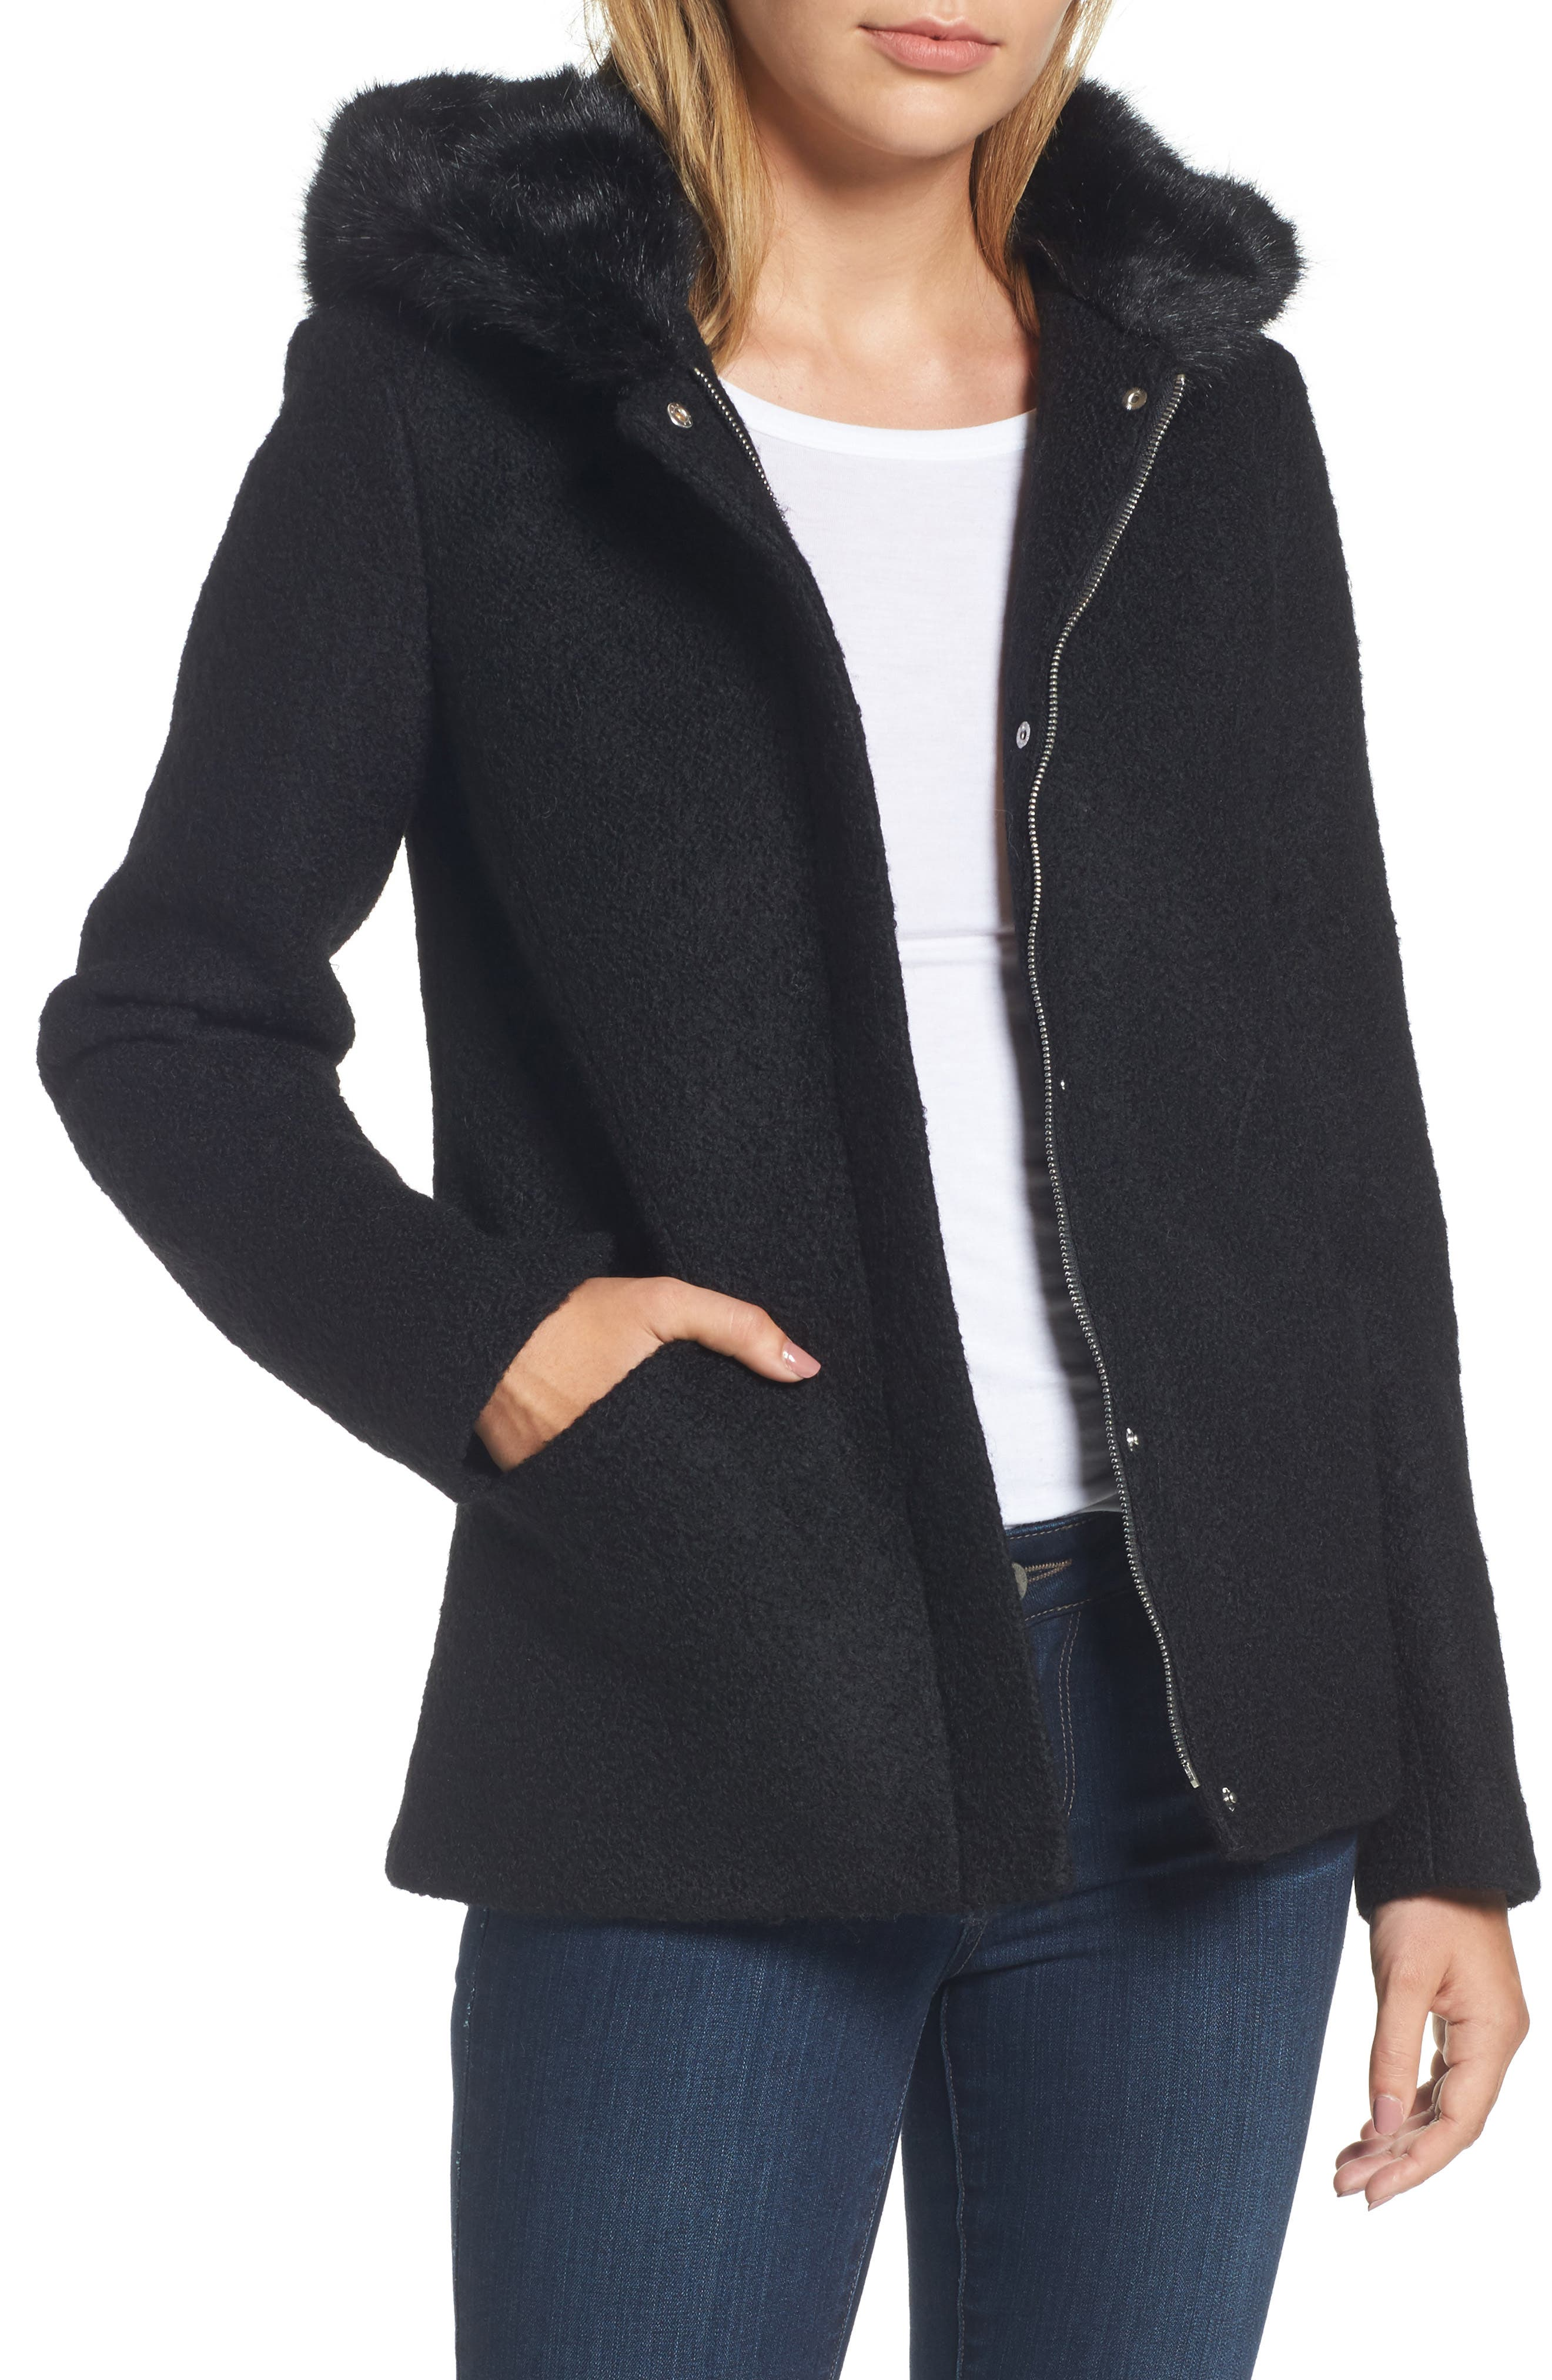 Main Image - Laundry by Shelli Segal Hooded Wool Blend Bouclé Jacket with Faux Fur Trim